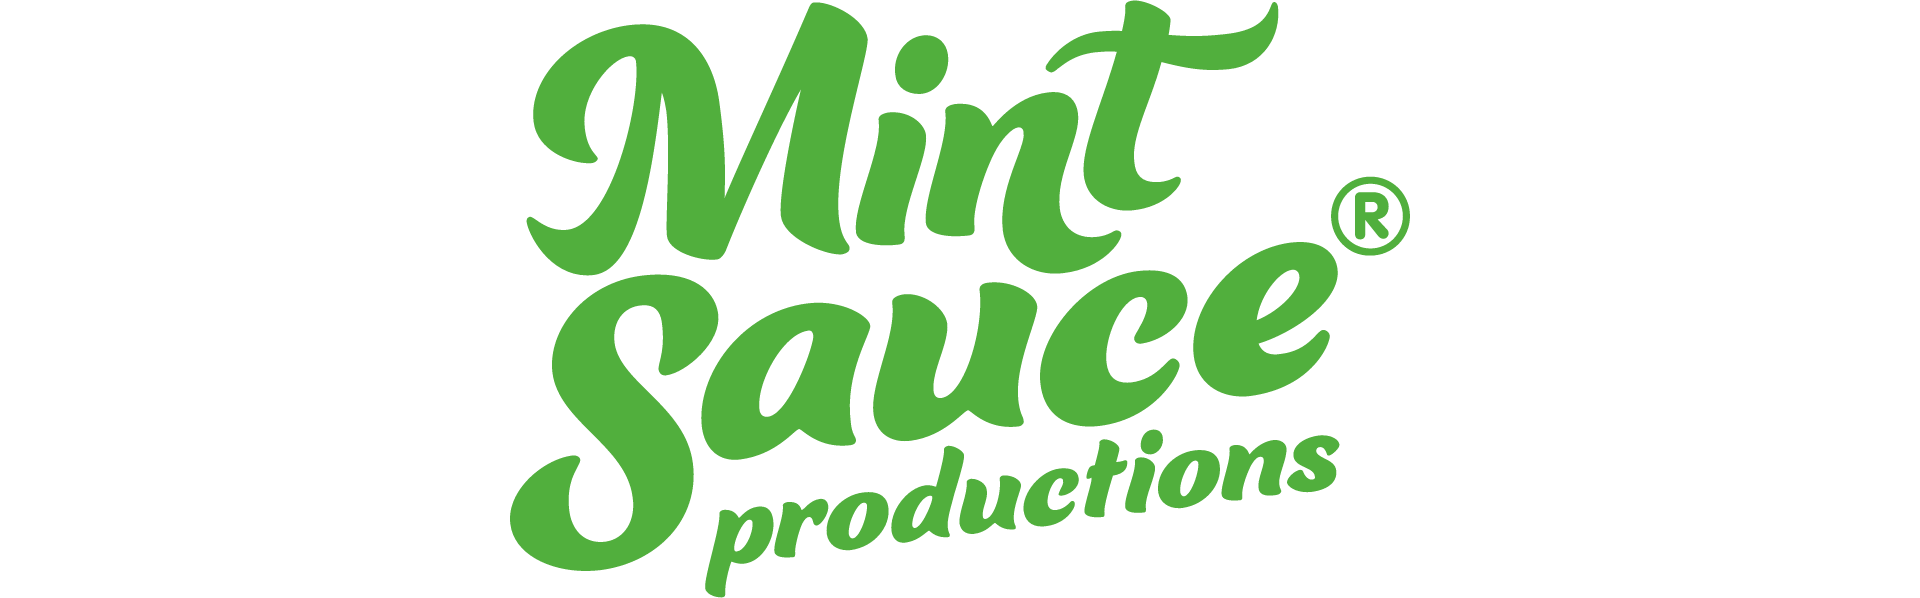 Mint Sauce Productions Logo Design By Louise Russell Design